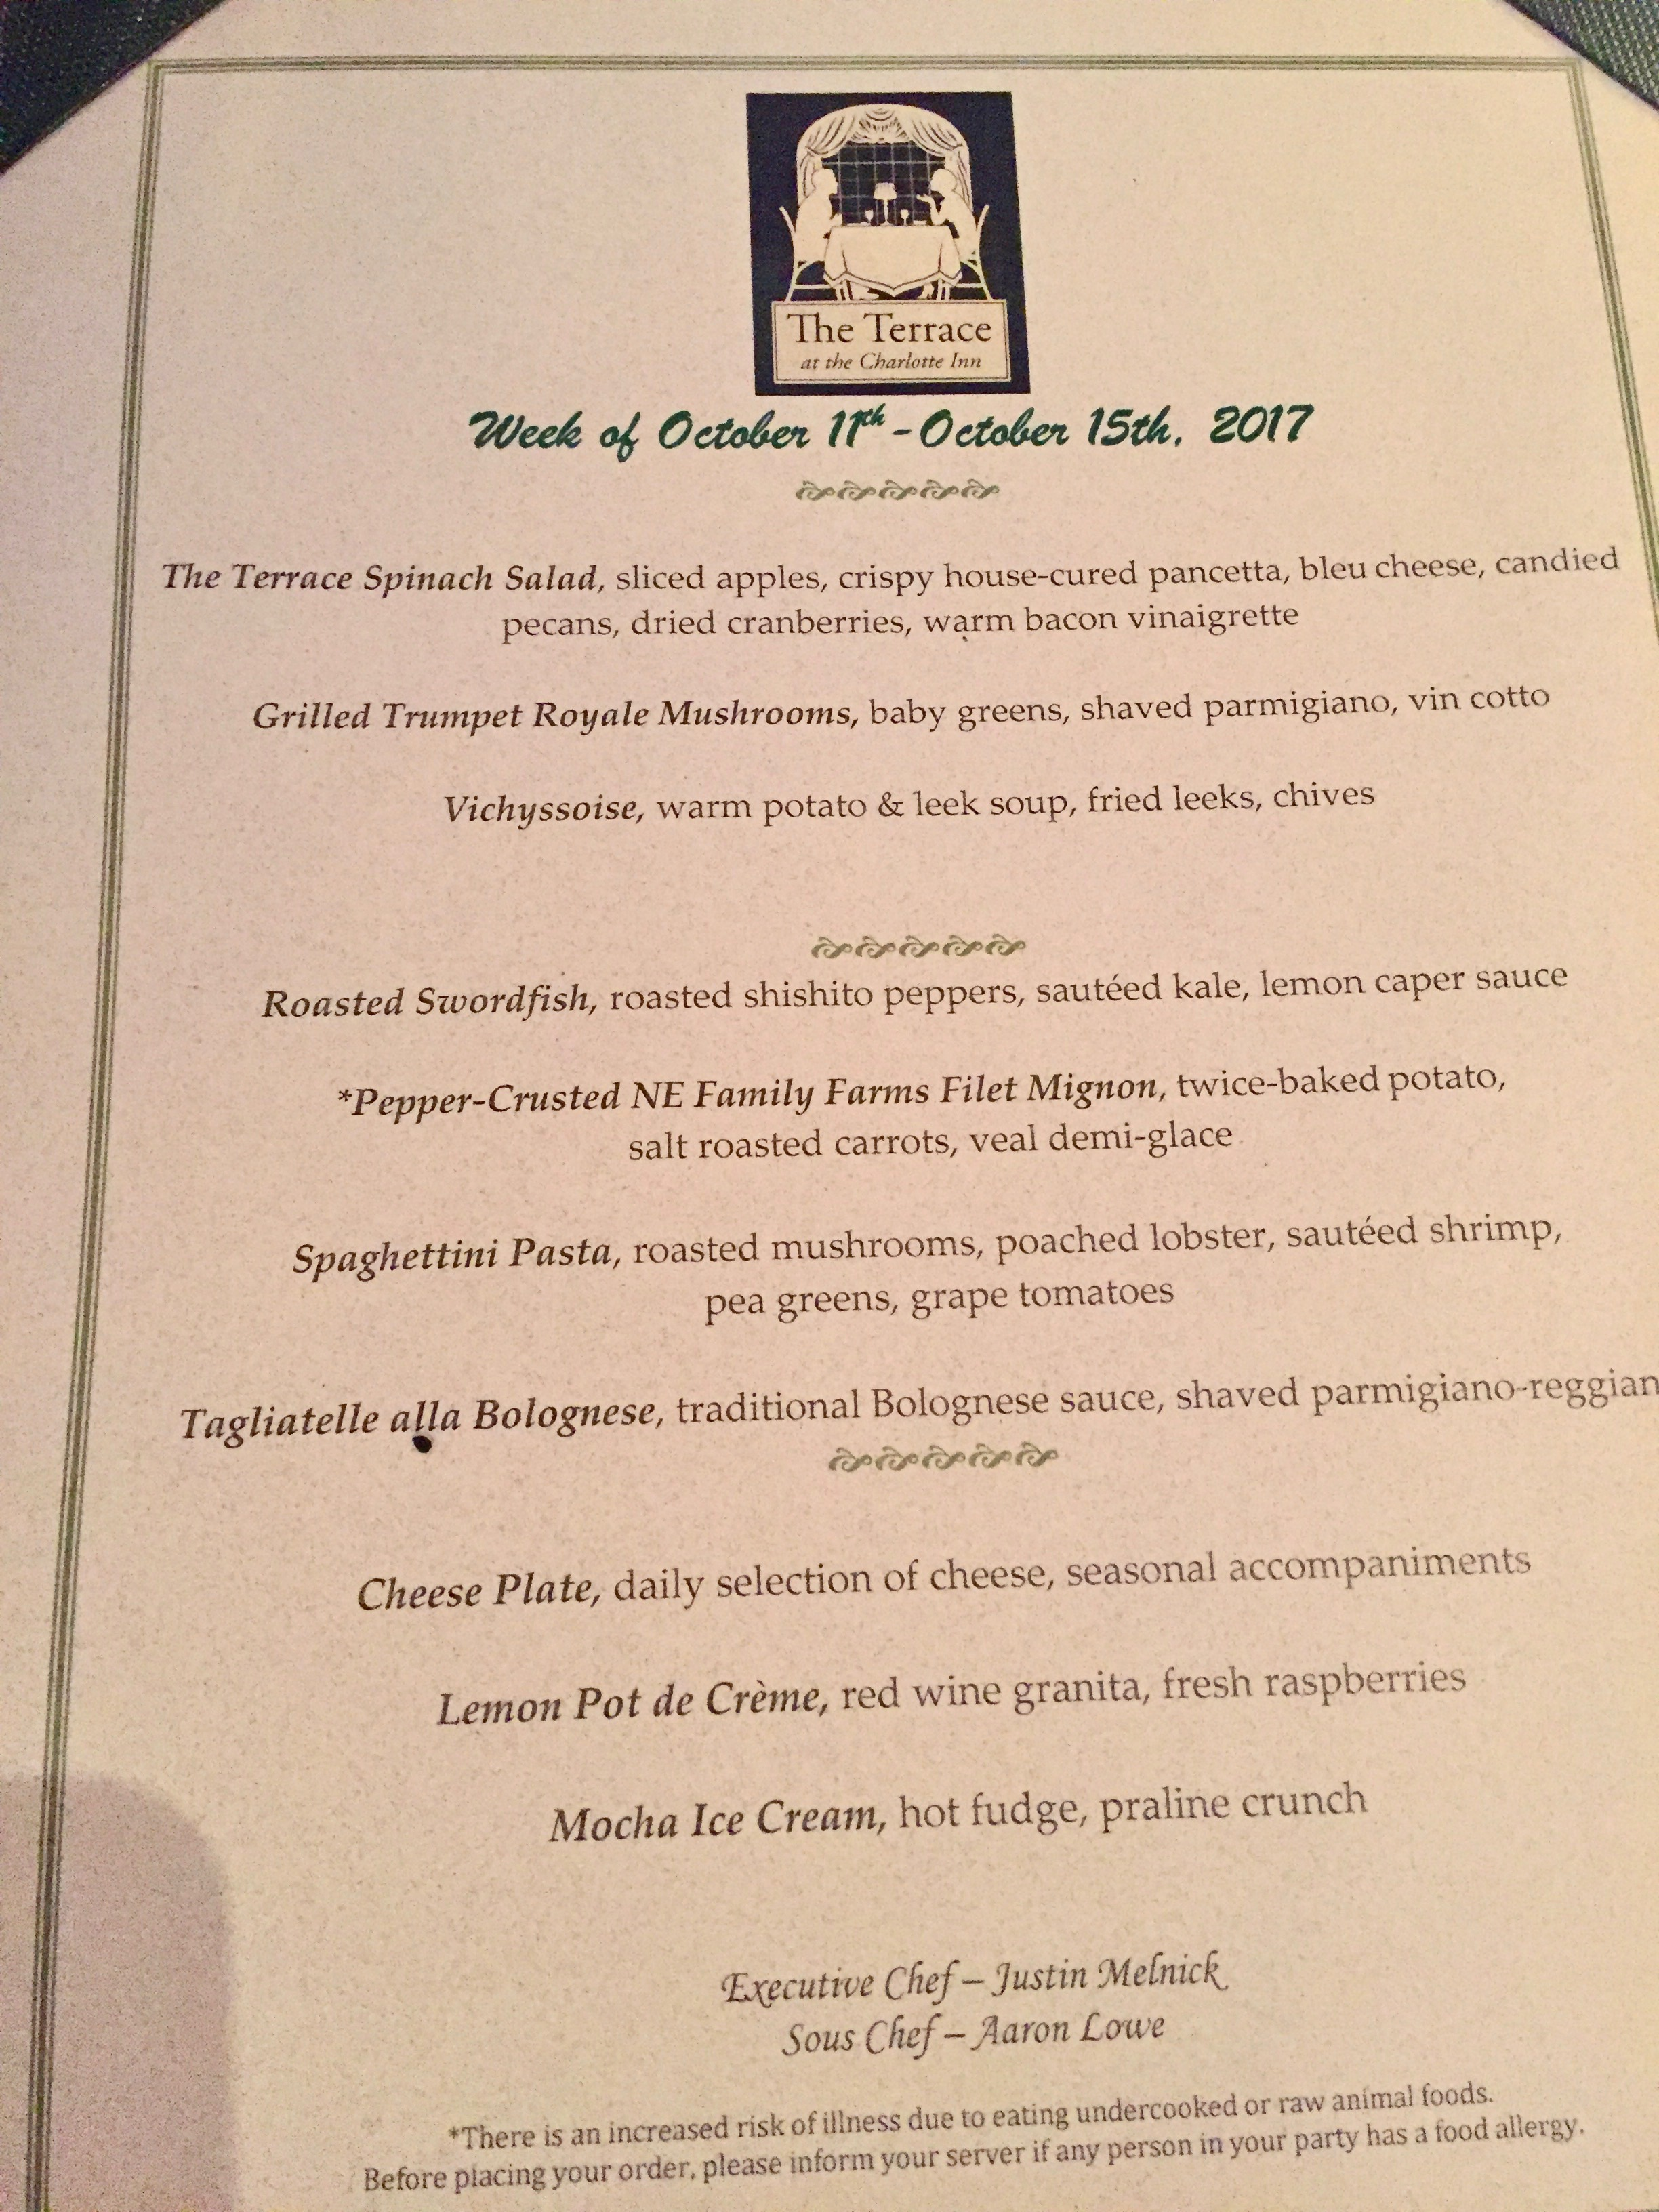 Dining at the Charlotte Inn with New England Fine Living